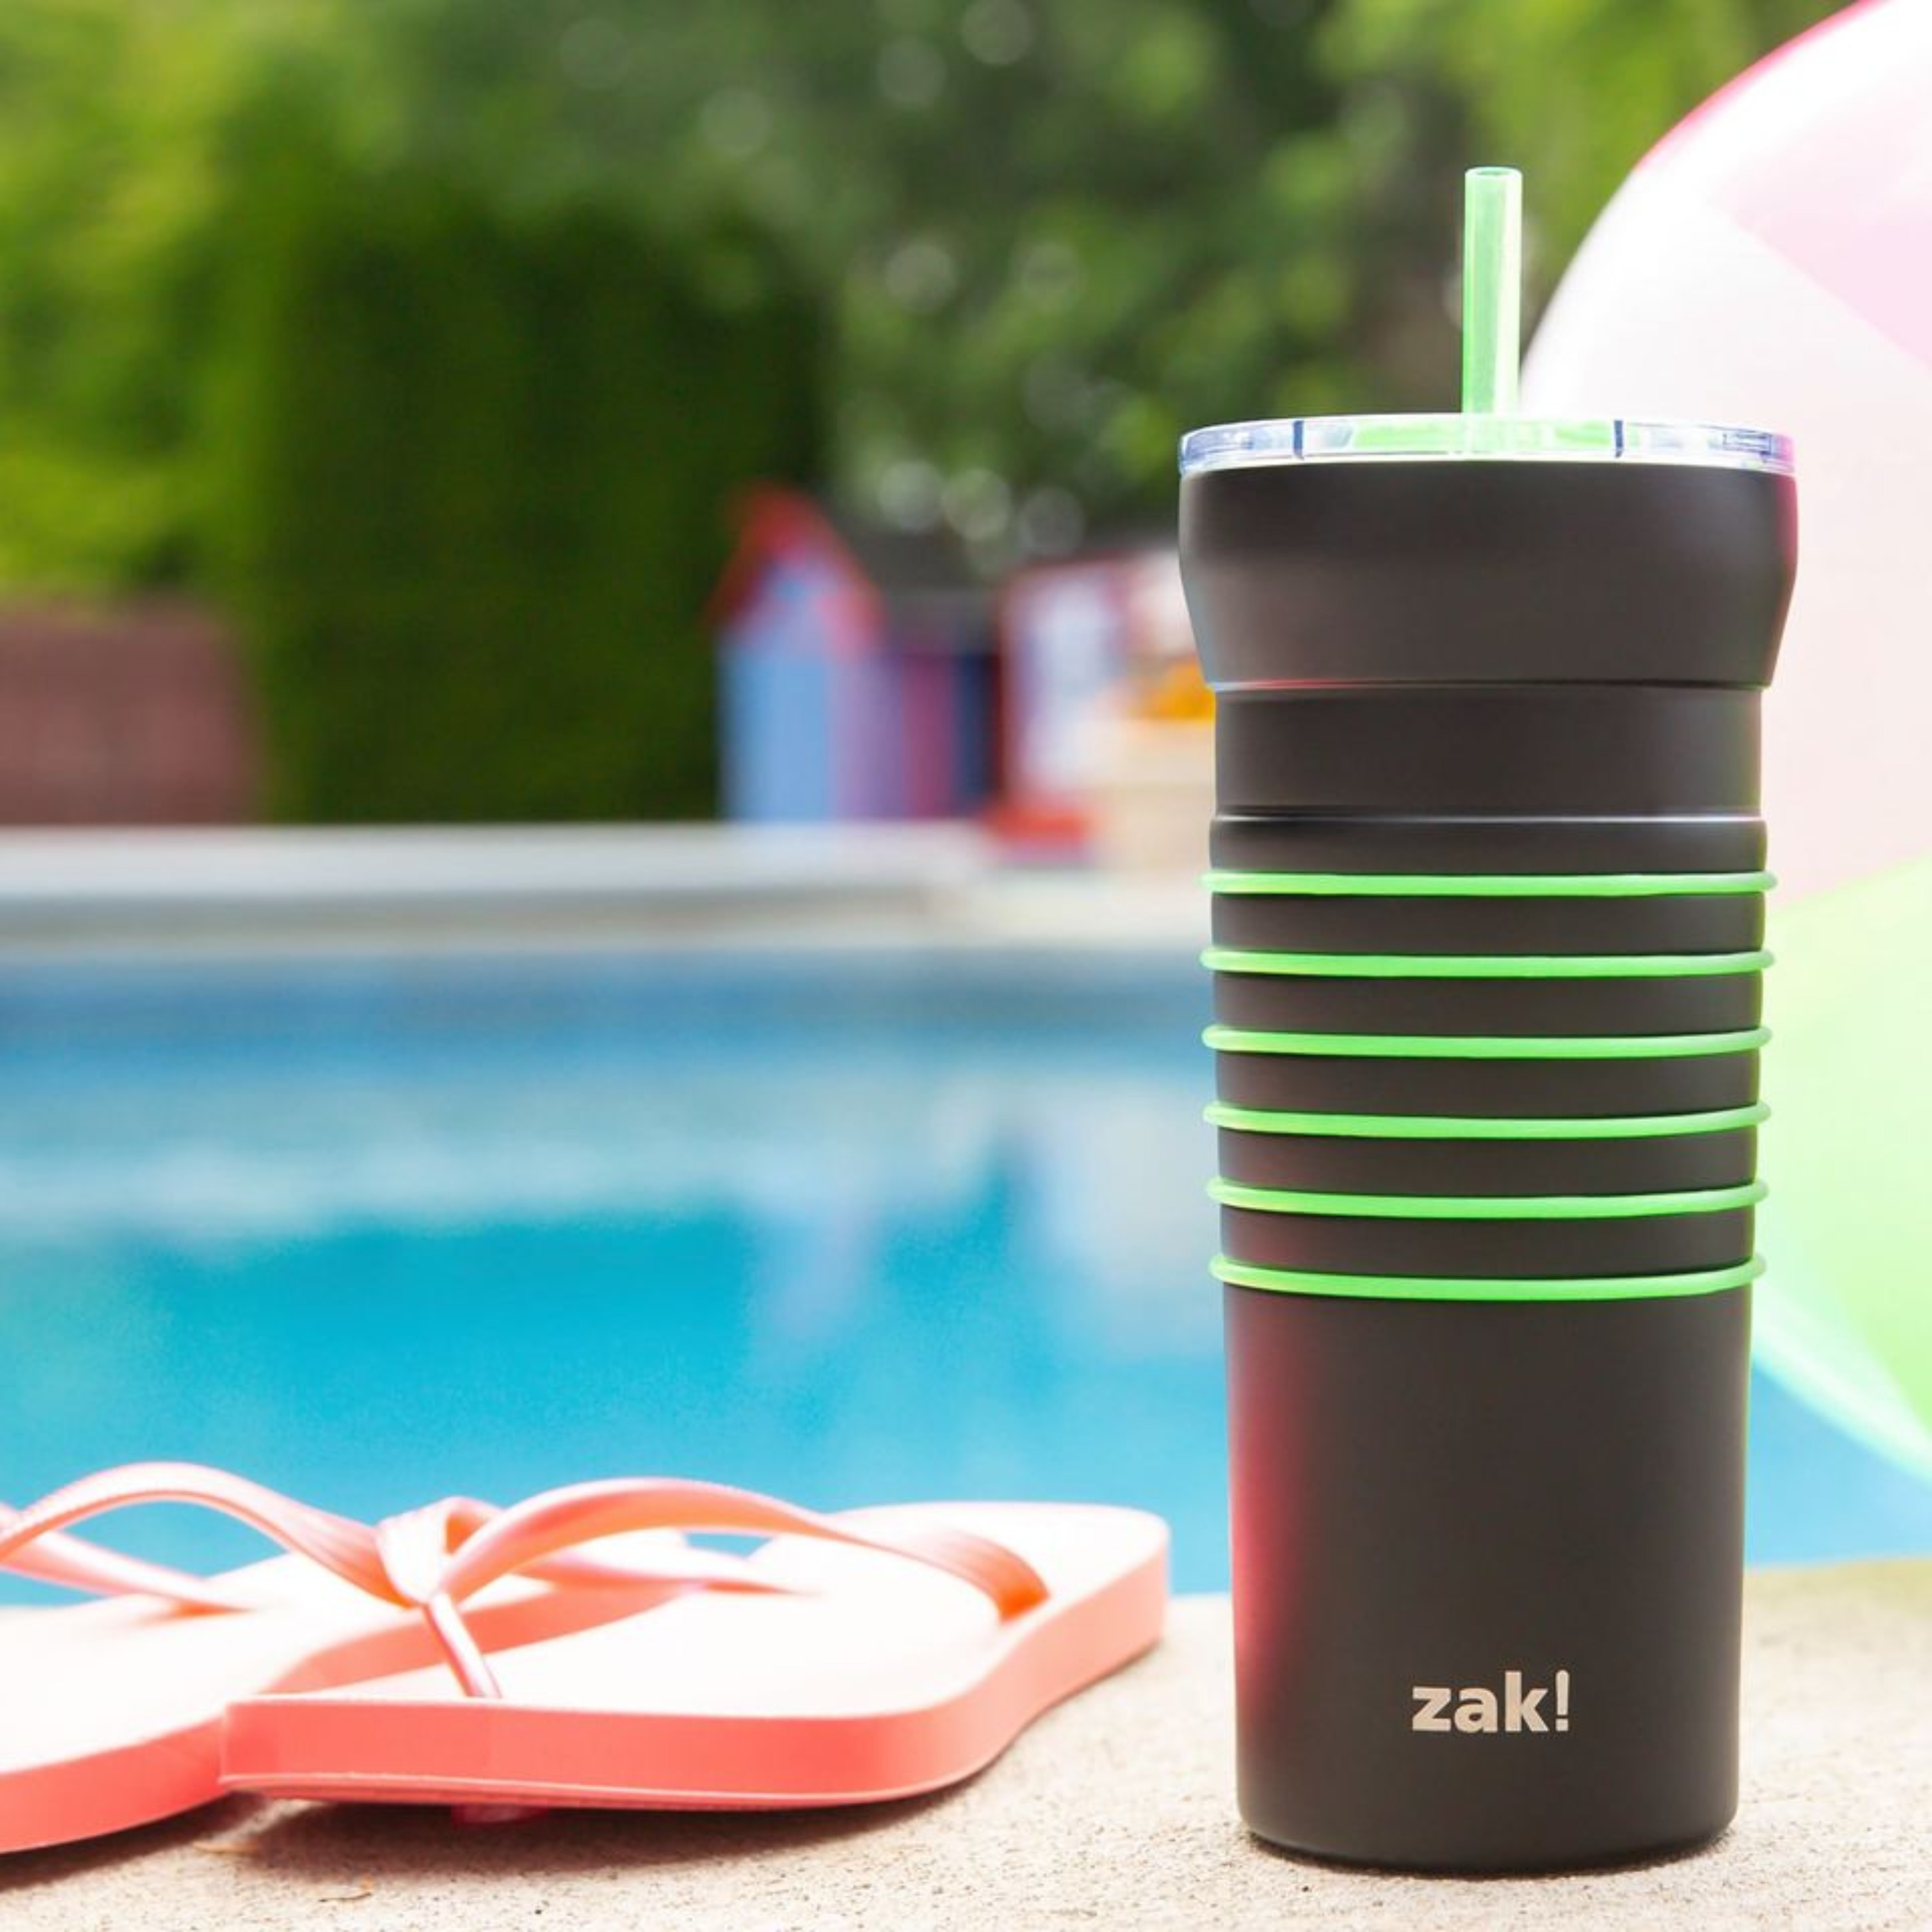 HydraTrak 20 ounce Vacuum Insulated Stainless Steel Tumbler, Black with Green Rings slideshow image 5